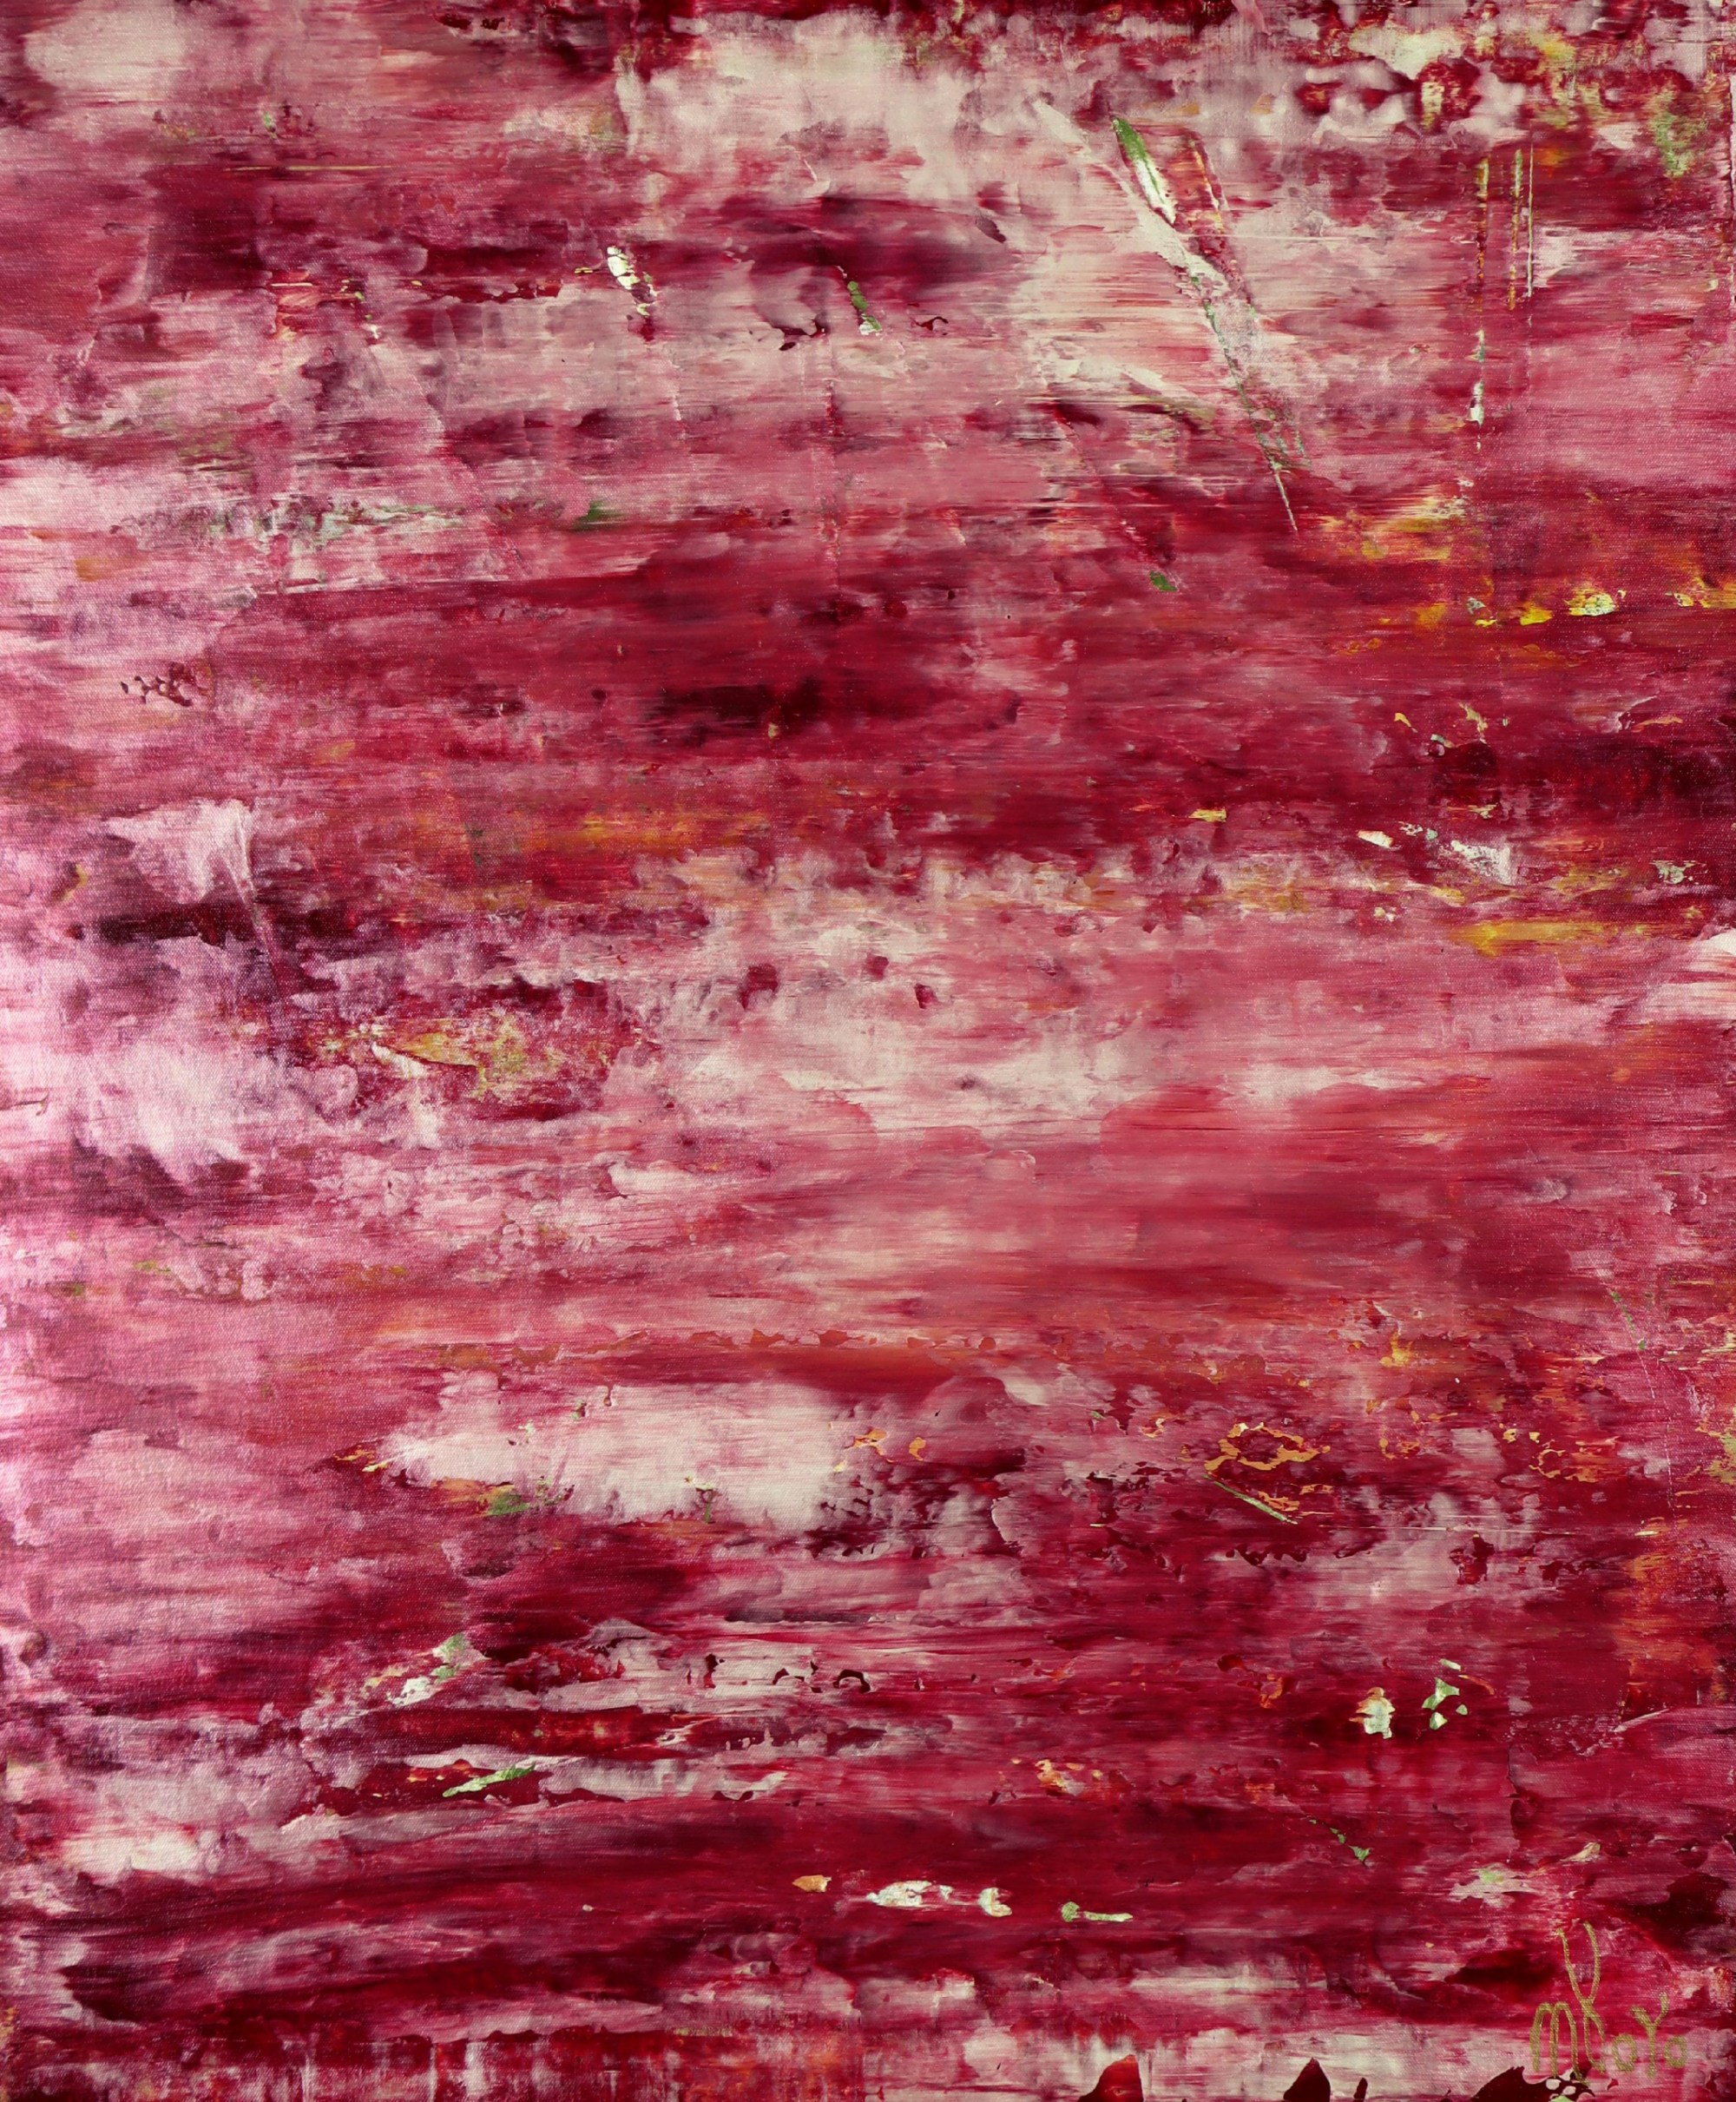 Coral Sunset (Red Reflections) (2021) by Nestor Toro